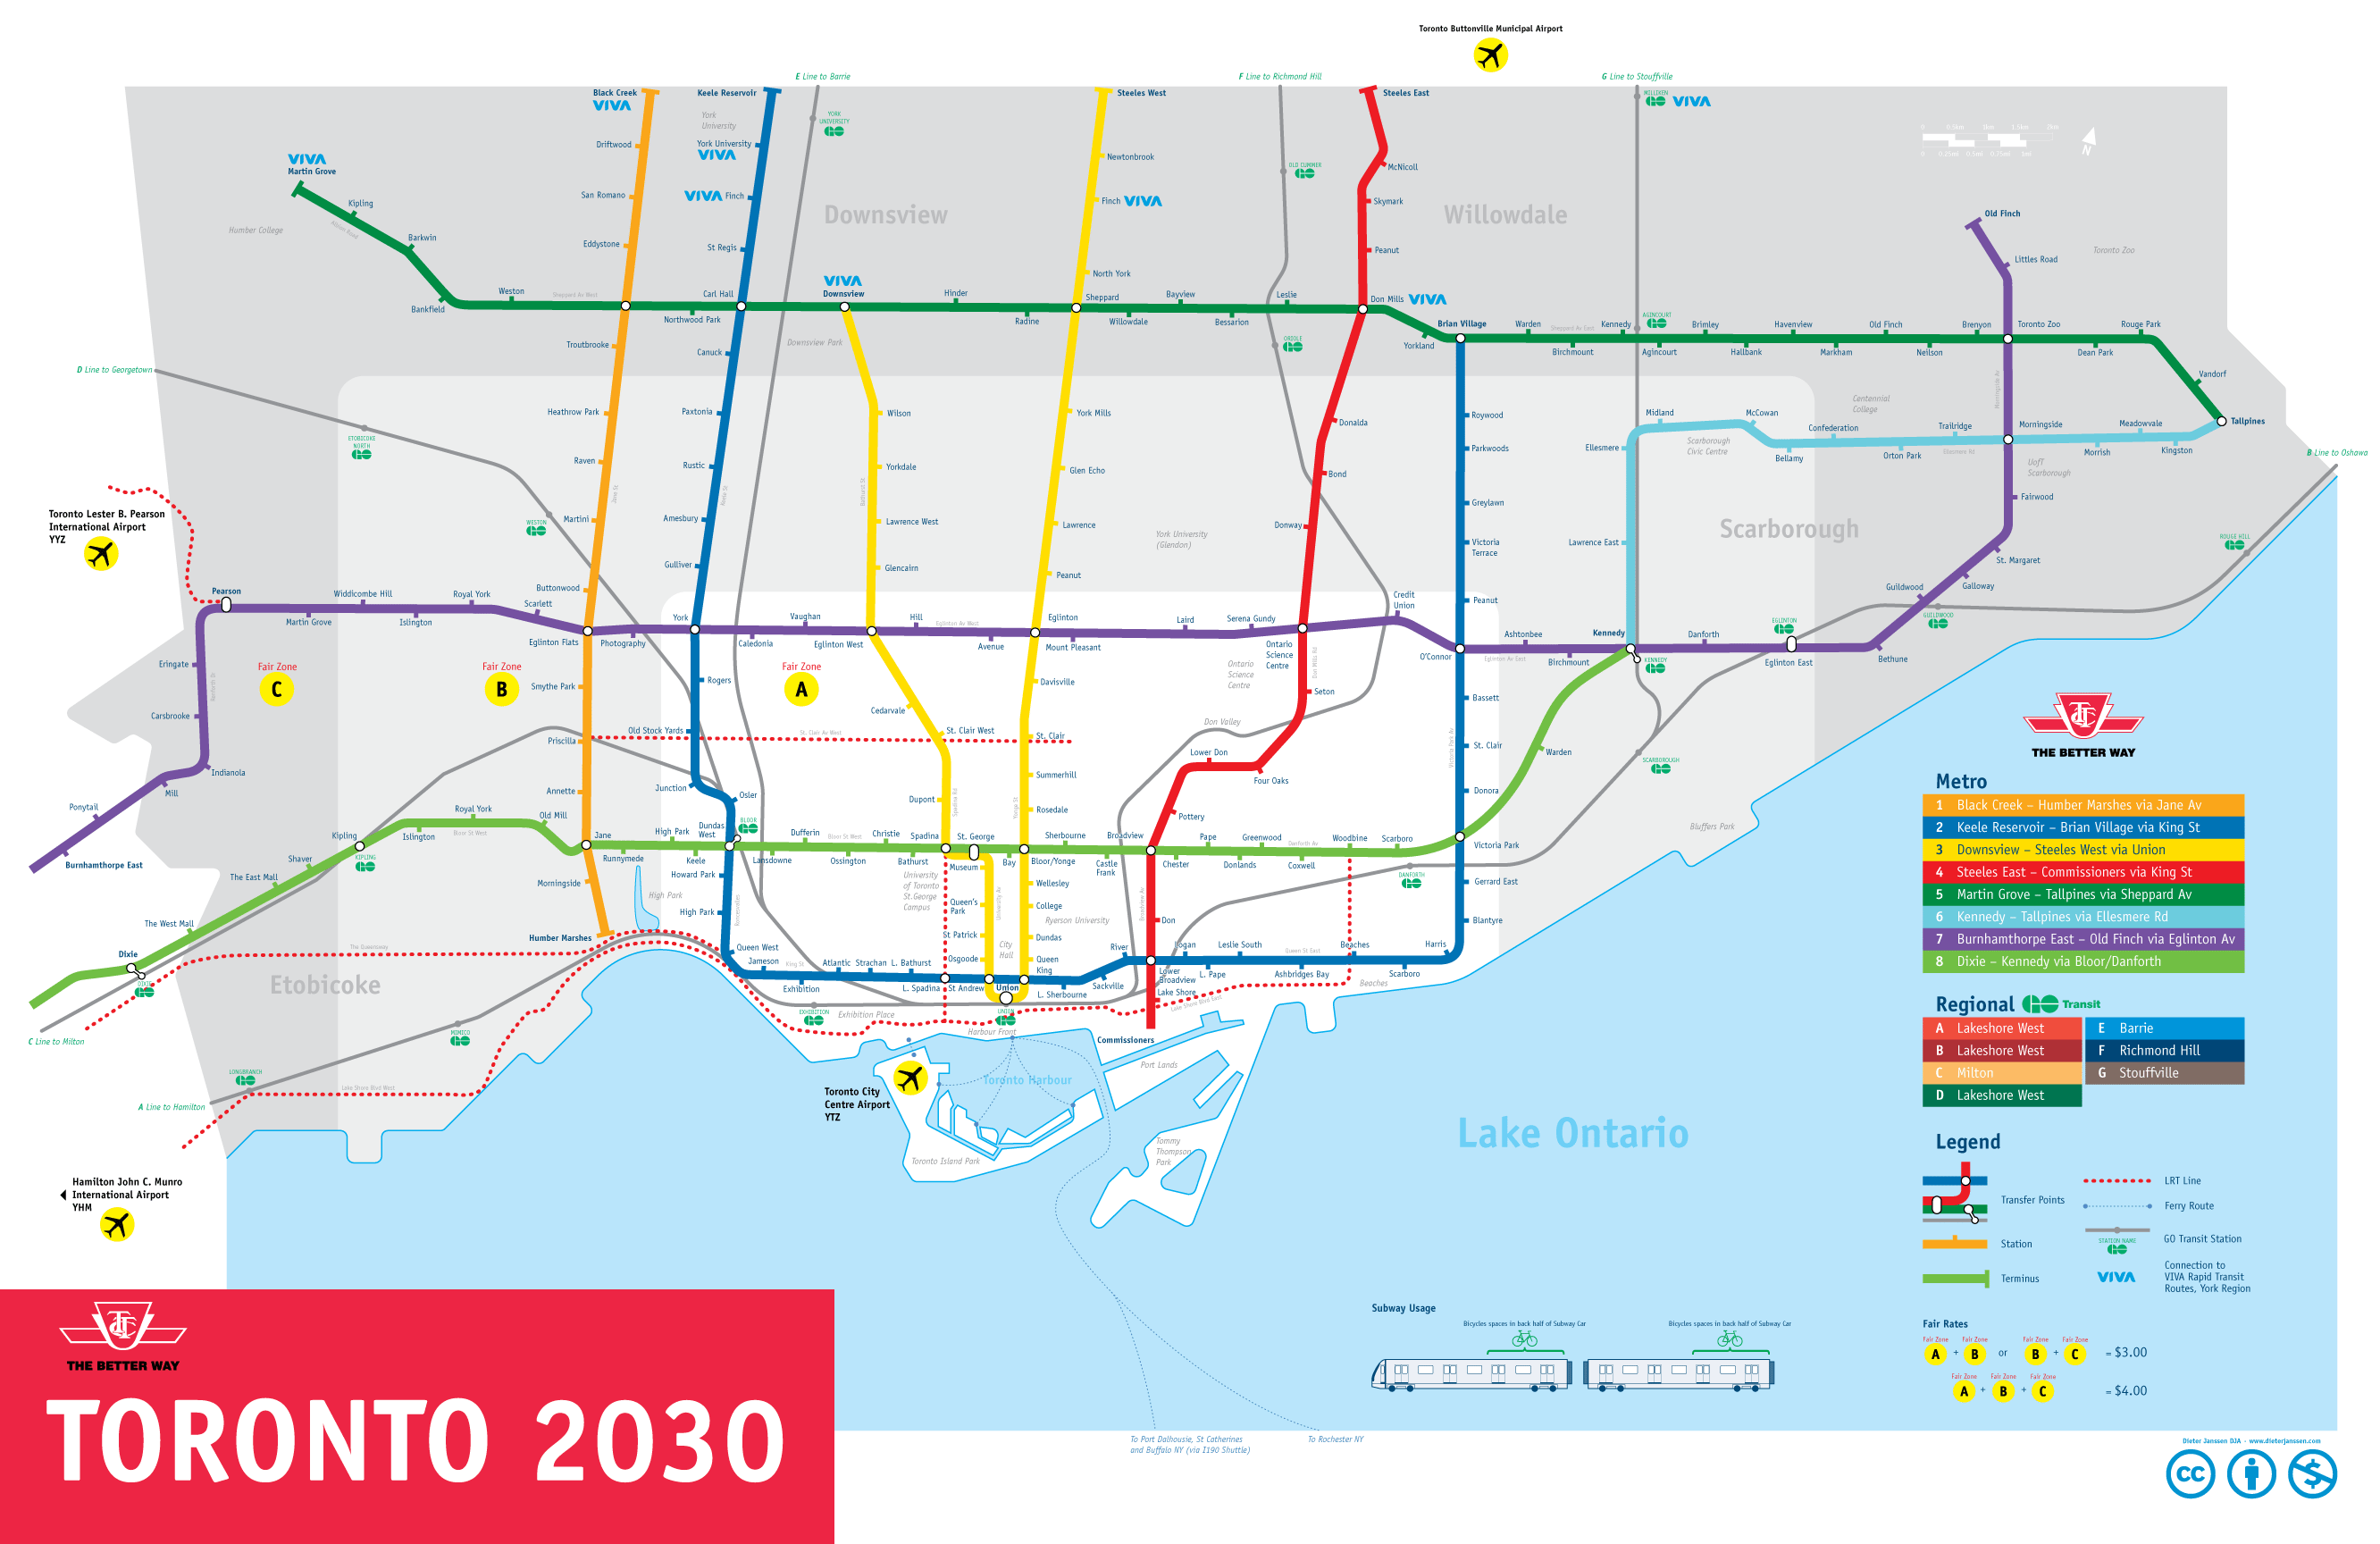 Toronto-GTA-Subway-Map-2030 Galapagos Islands Map Google on maldives islands google map, netherlands google map, fiji islands google map, bahrain google map, easter island google map, ethiopia google map, alaska google map, barbados google map, iceland google map, seychelles islands google map, guam google map, baltic sea google map, new zealand google map, grenada google map, cuba google map, lebanon google map, qatar google map, hawaii google map, caribbean islands google map, aruba google map,